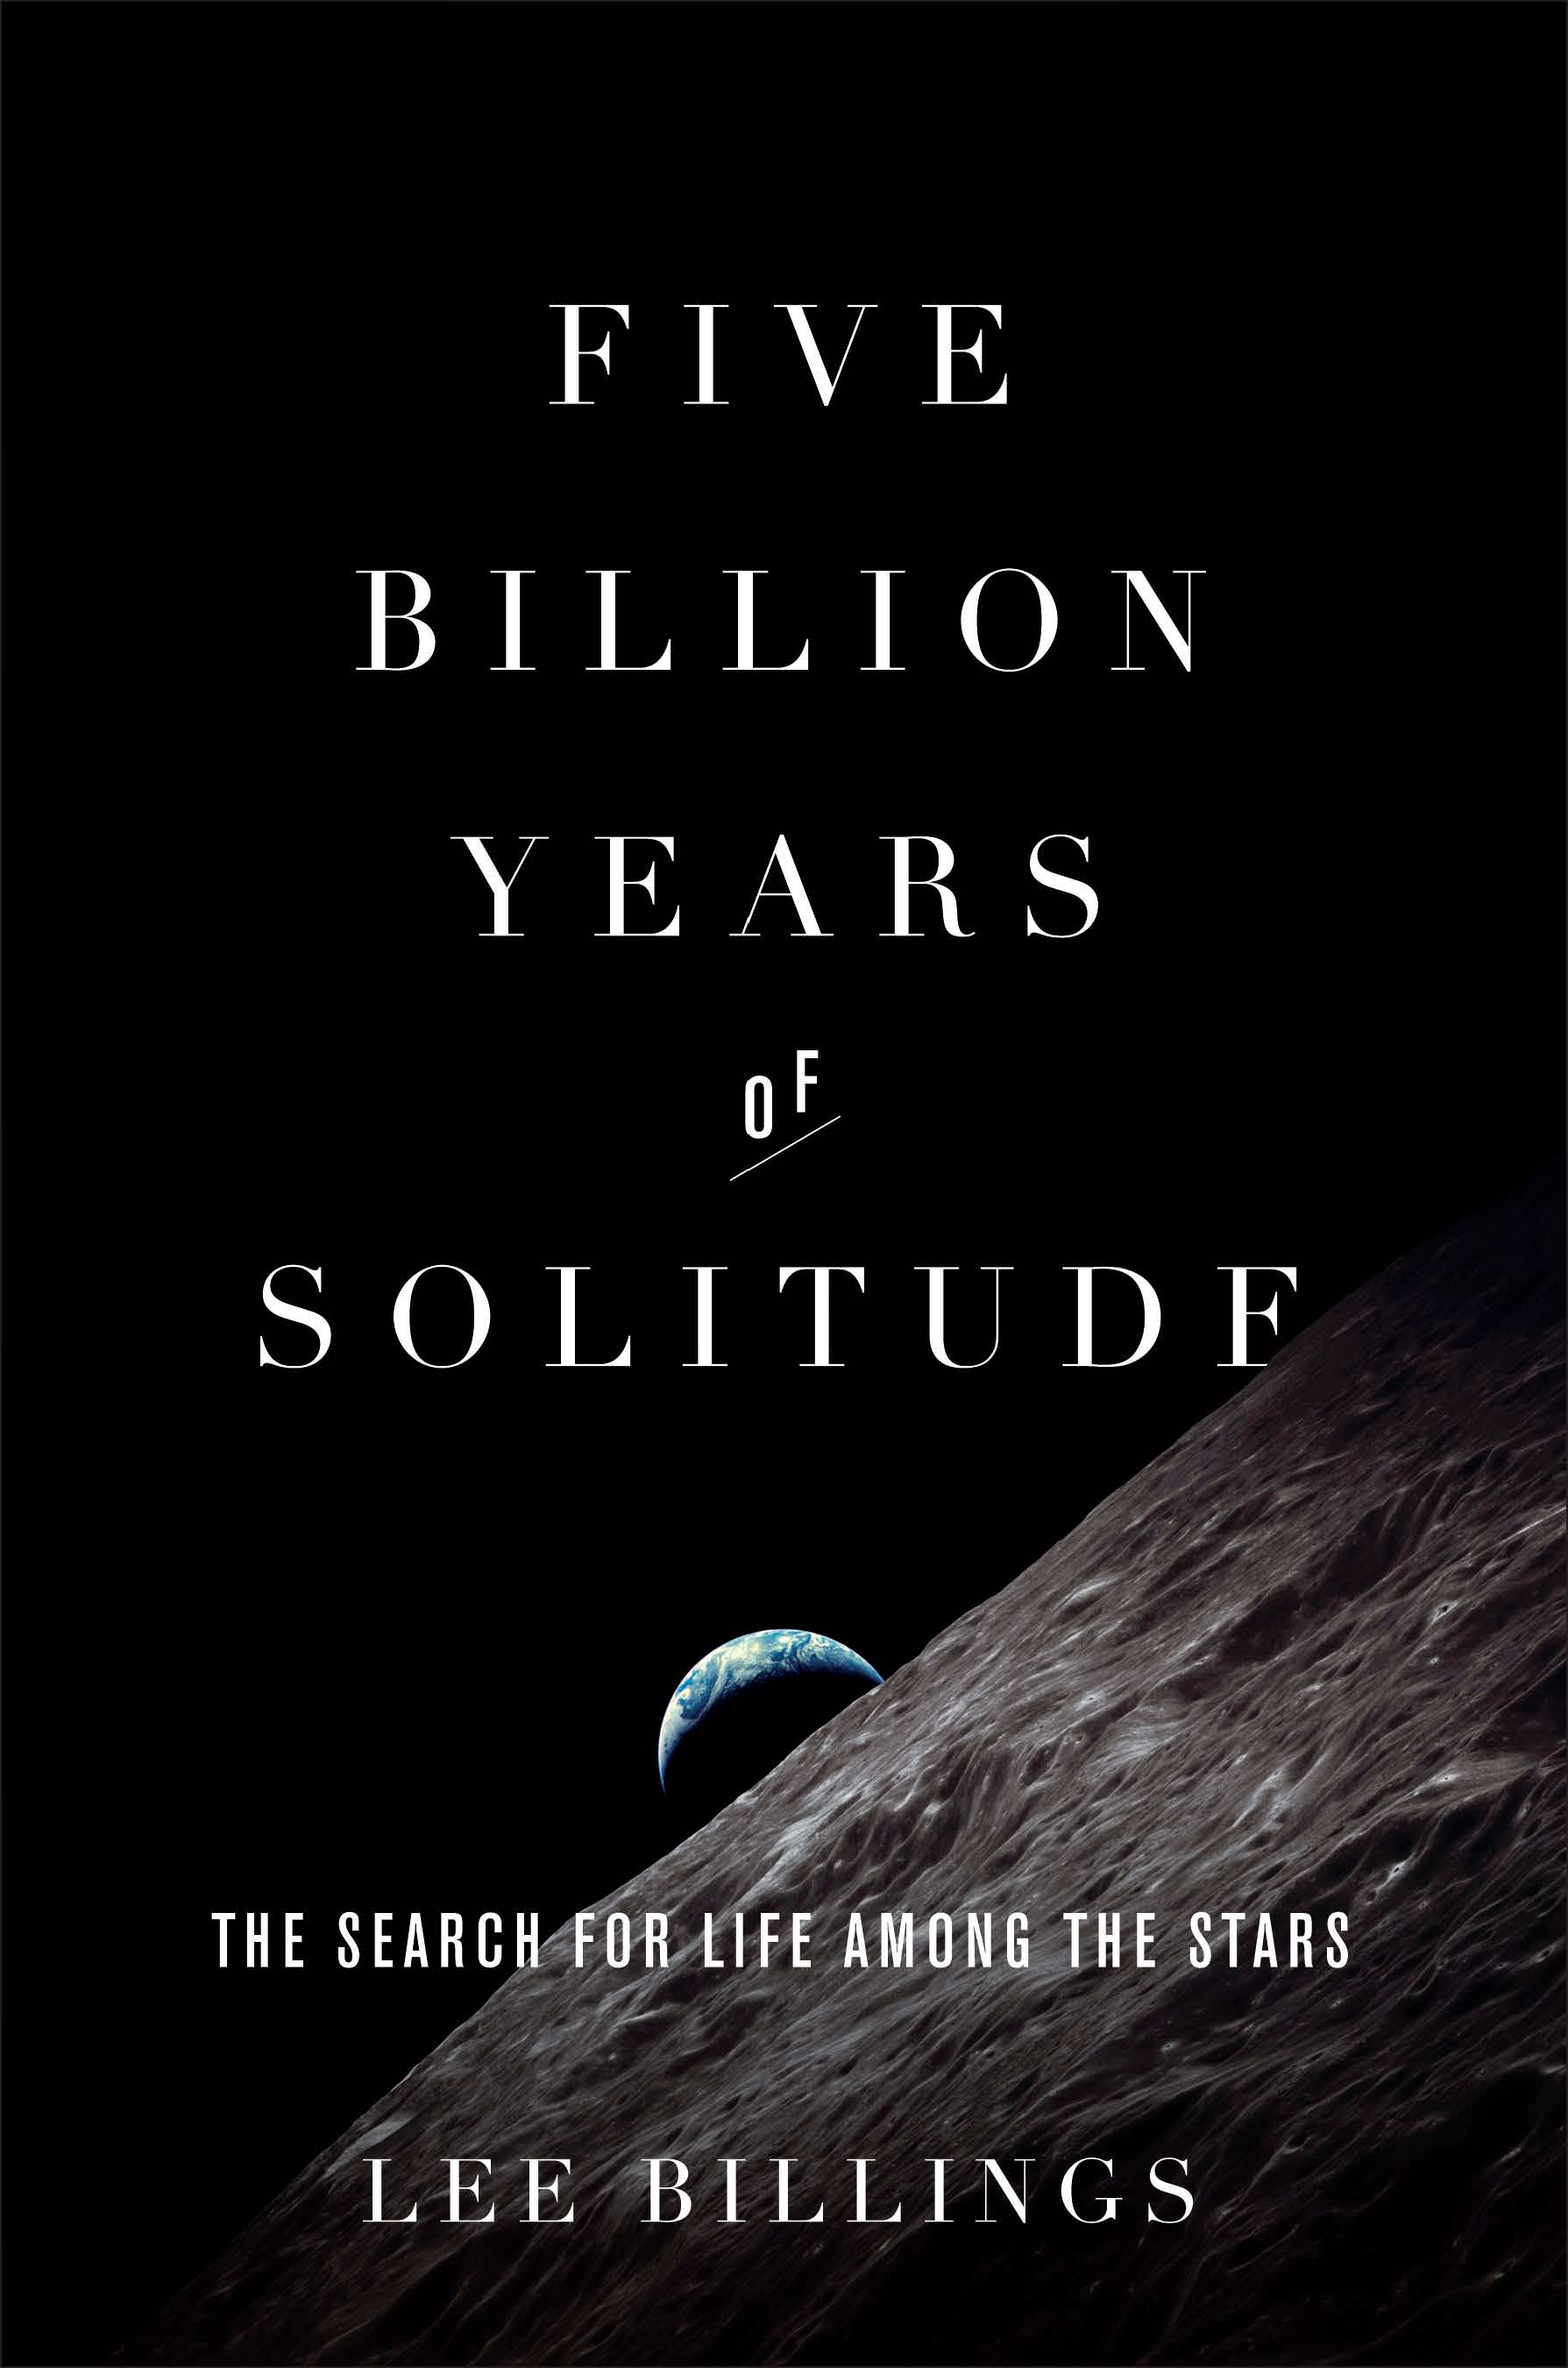 """Five Billion Years of Solitude"" By Lee Billings"